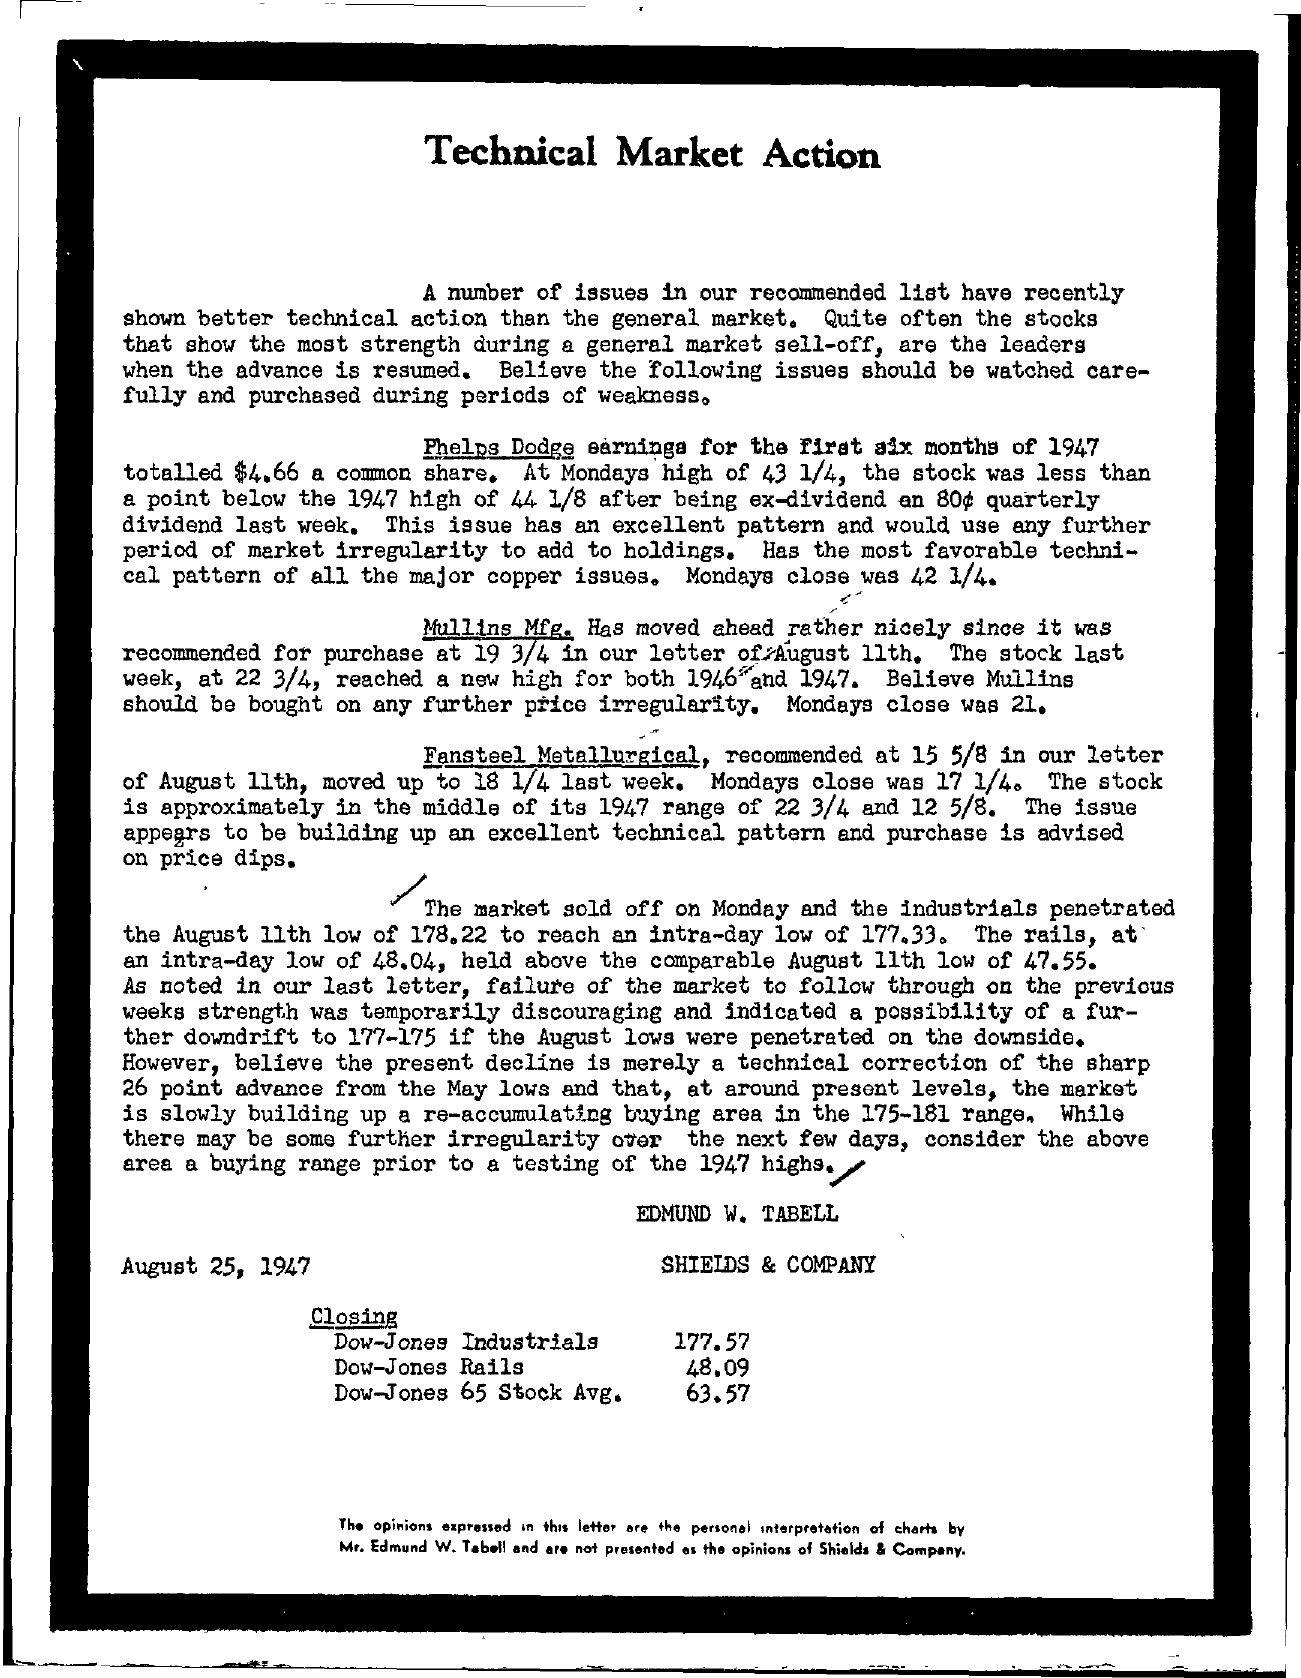 Tabell's Market Letter - August 25, 1947